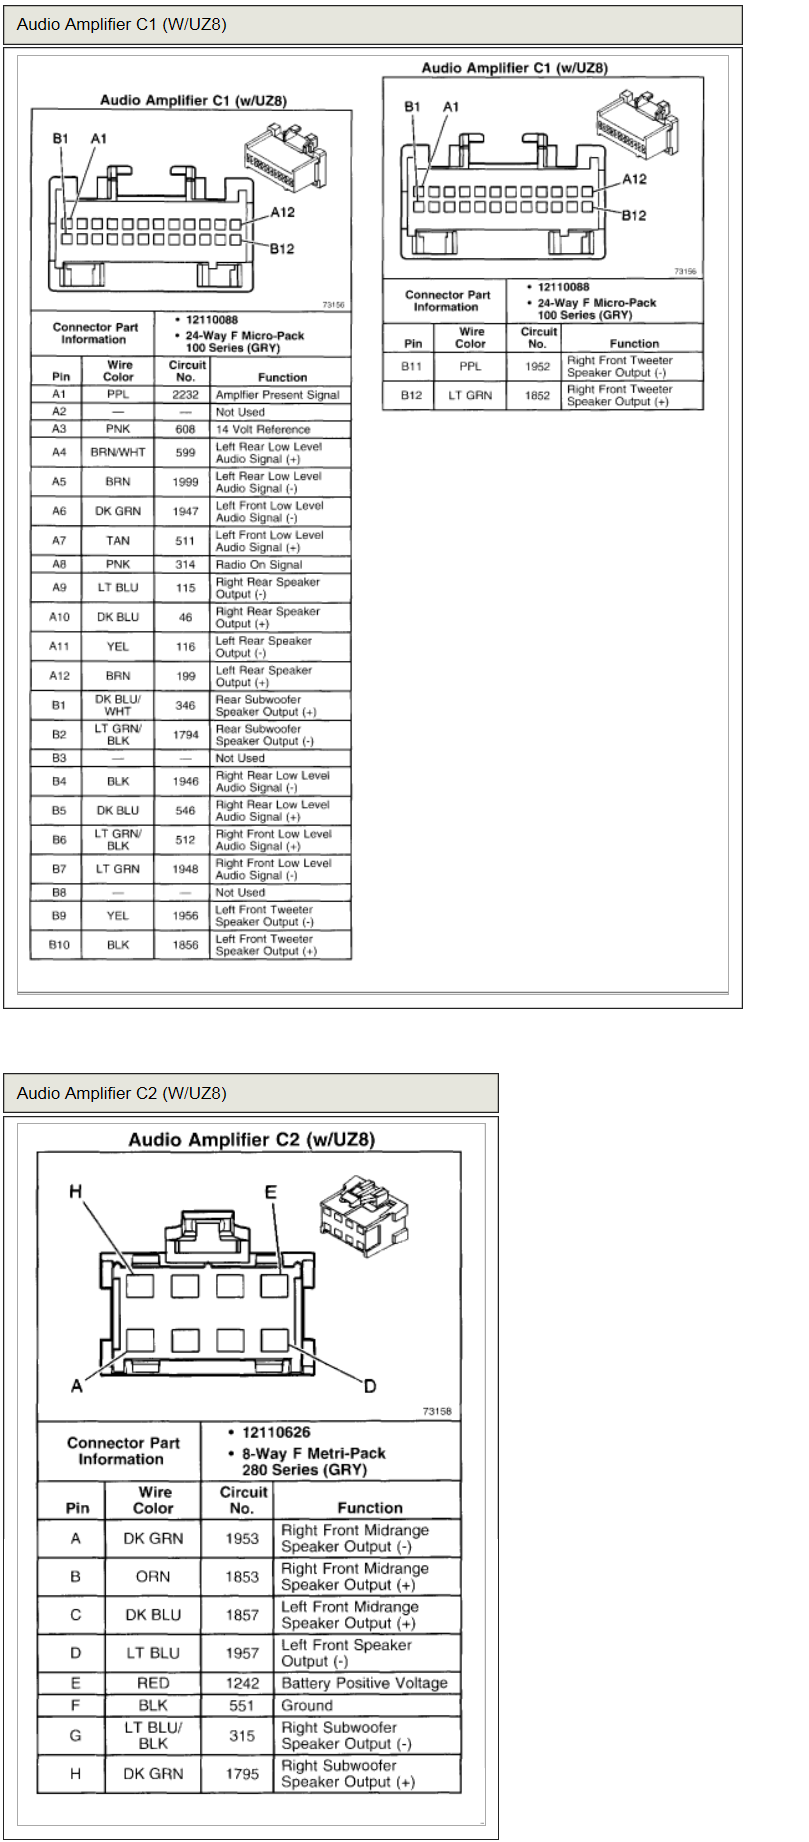 bose radio wiring diagram 1a6180 trailblazer bose radio wiring diagram wiring library 2006 gmc sierra bose radio wiring diagram bose radio wiring diagram wiring